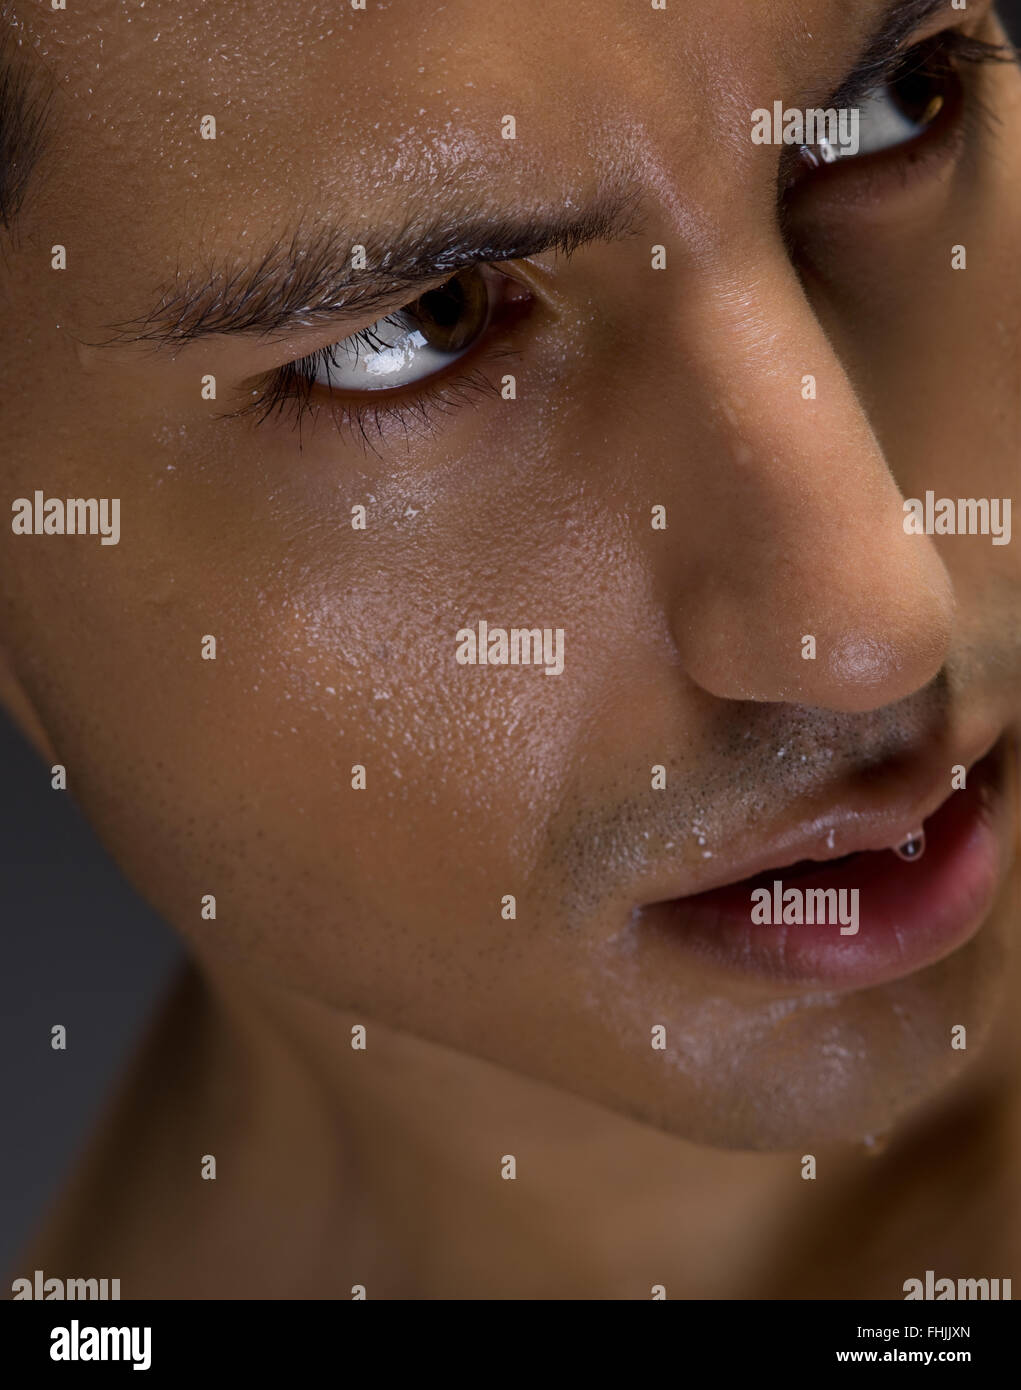 Close up of intense looking man with moisture on his face - Stock Image